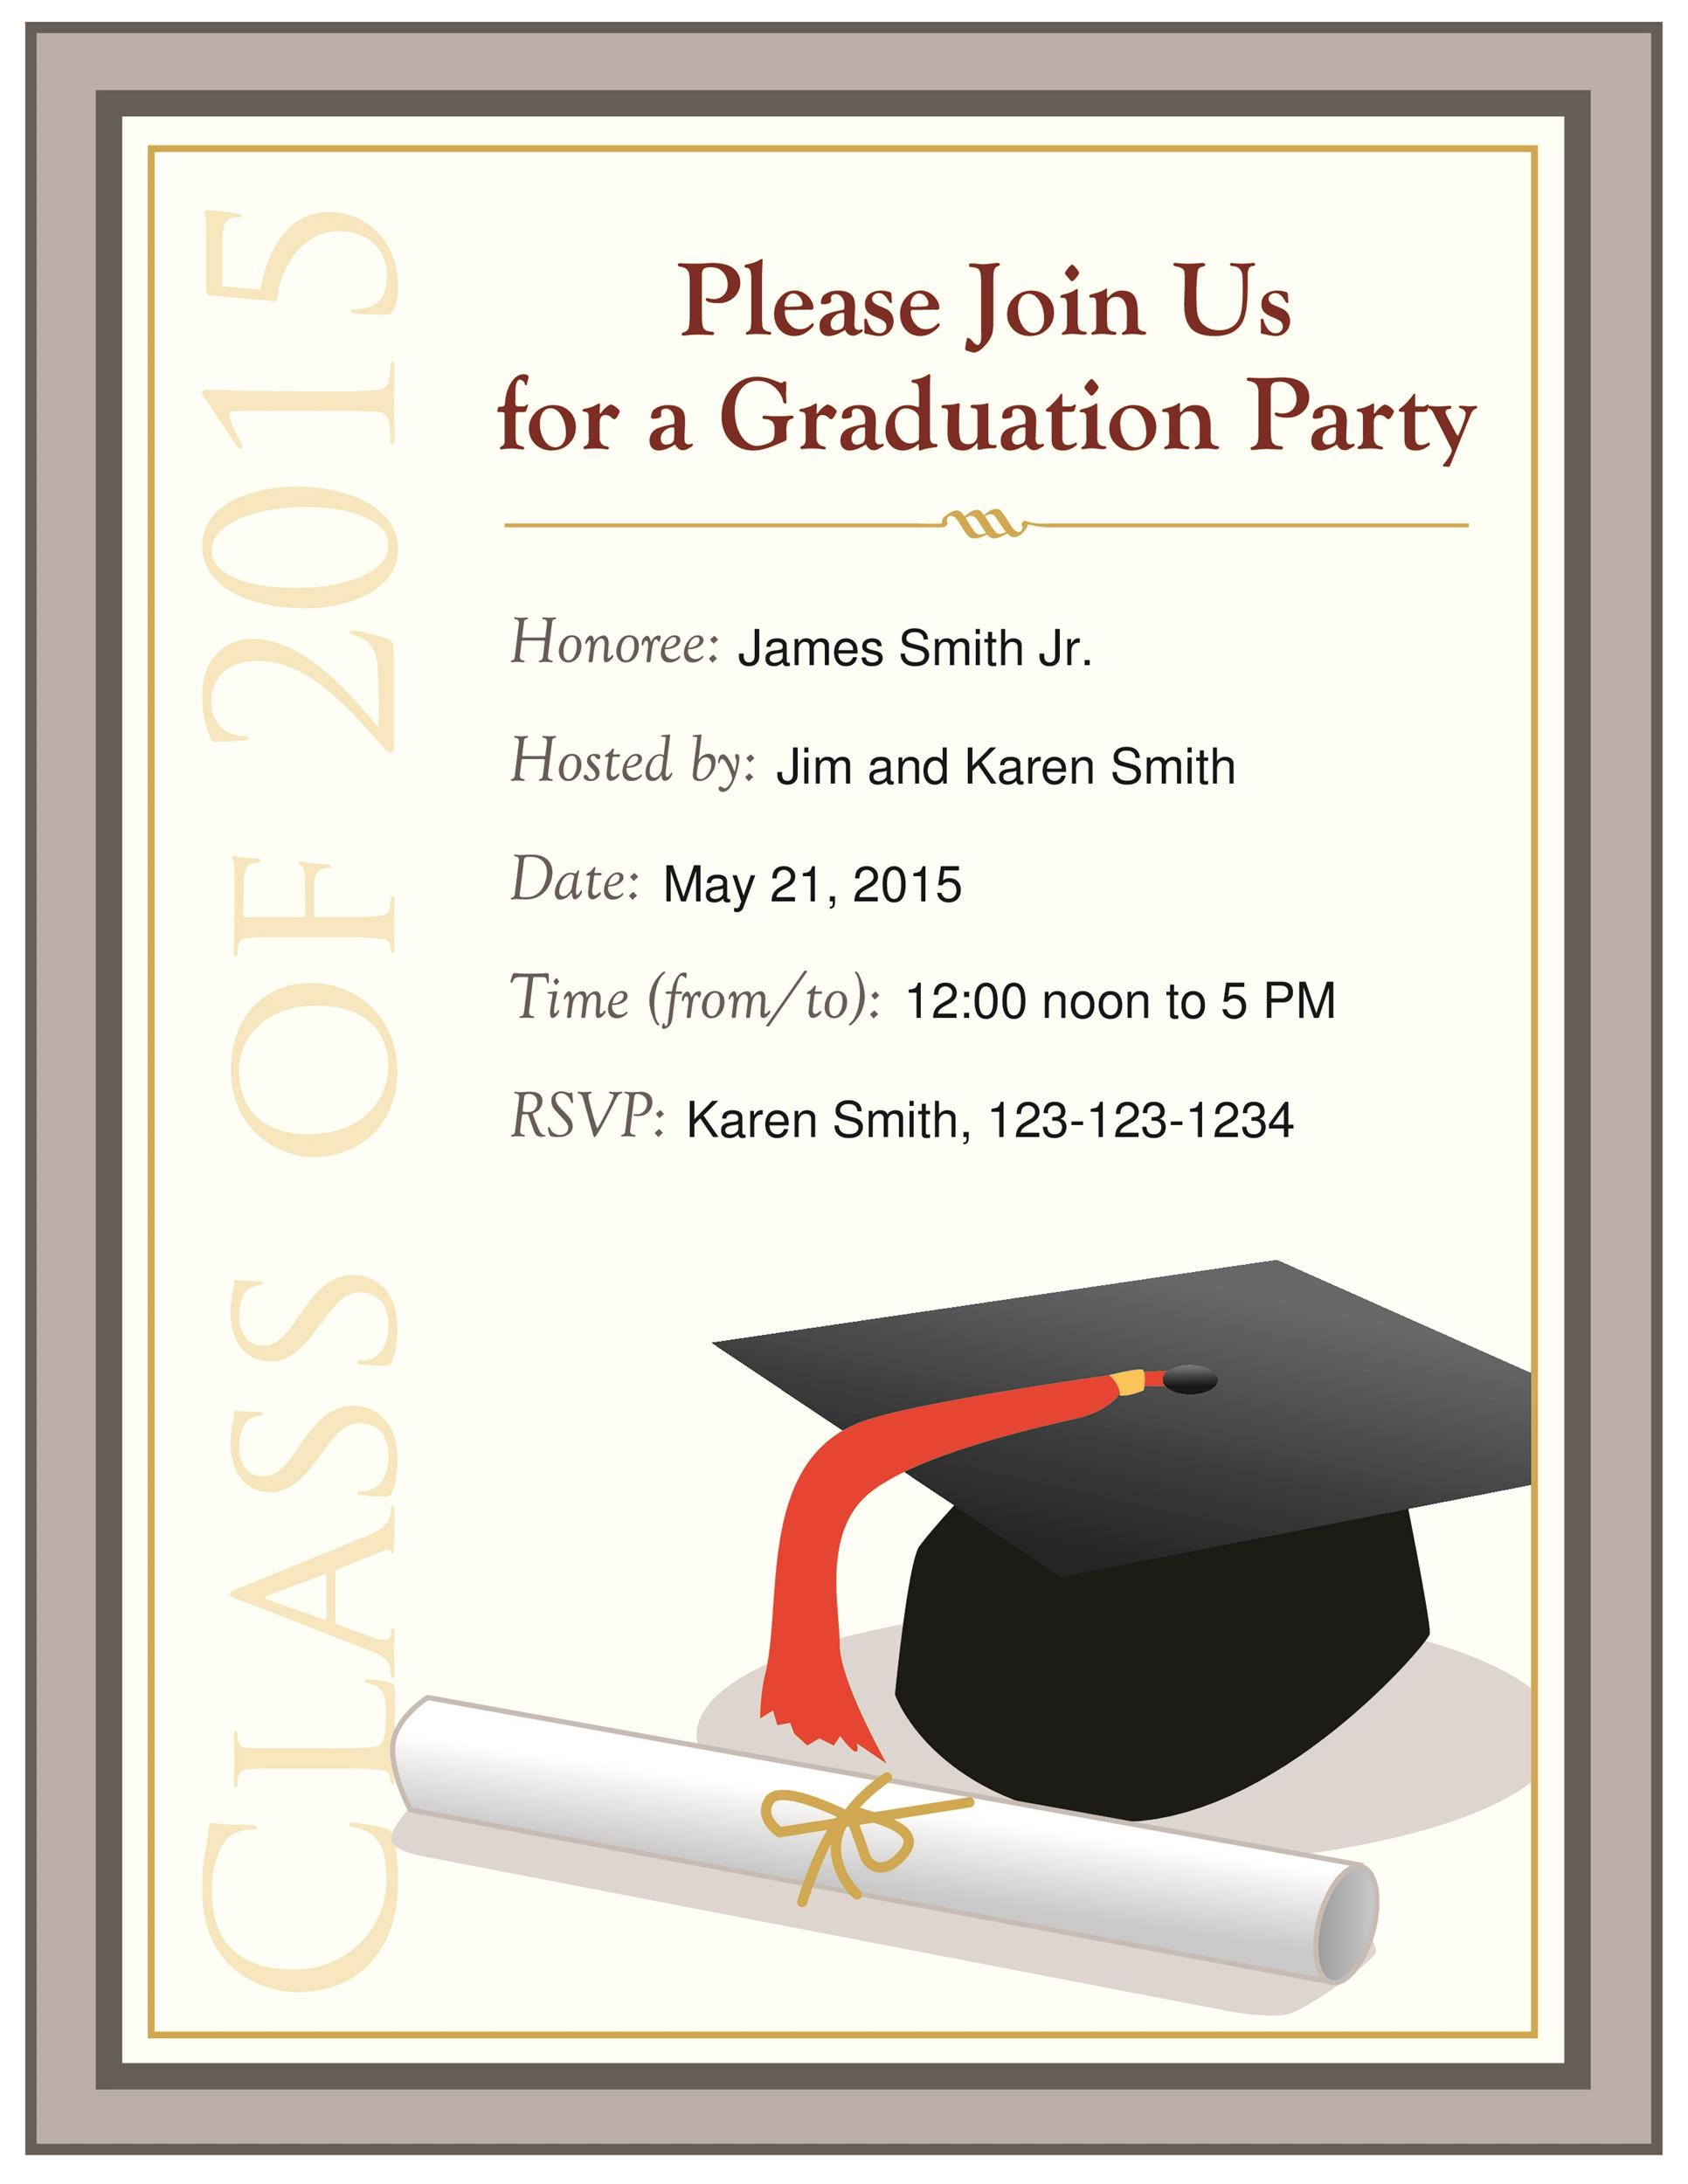 005 Archaicawful Graduation Party Invitation Template Idea  Microsoft Word 4 Per PageFull